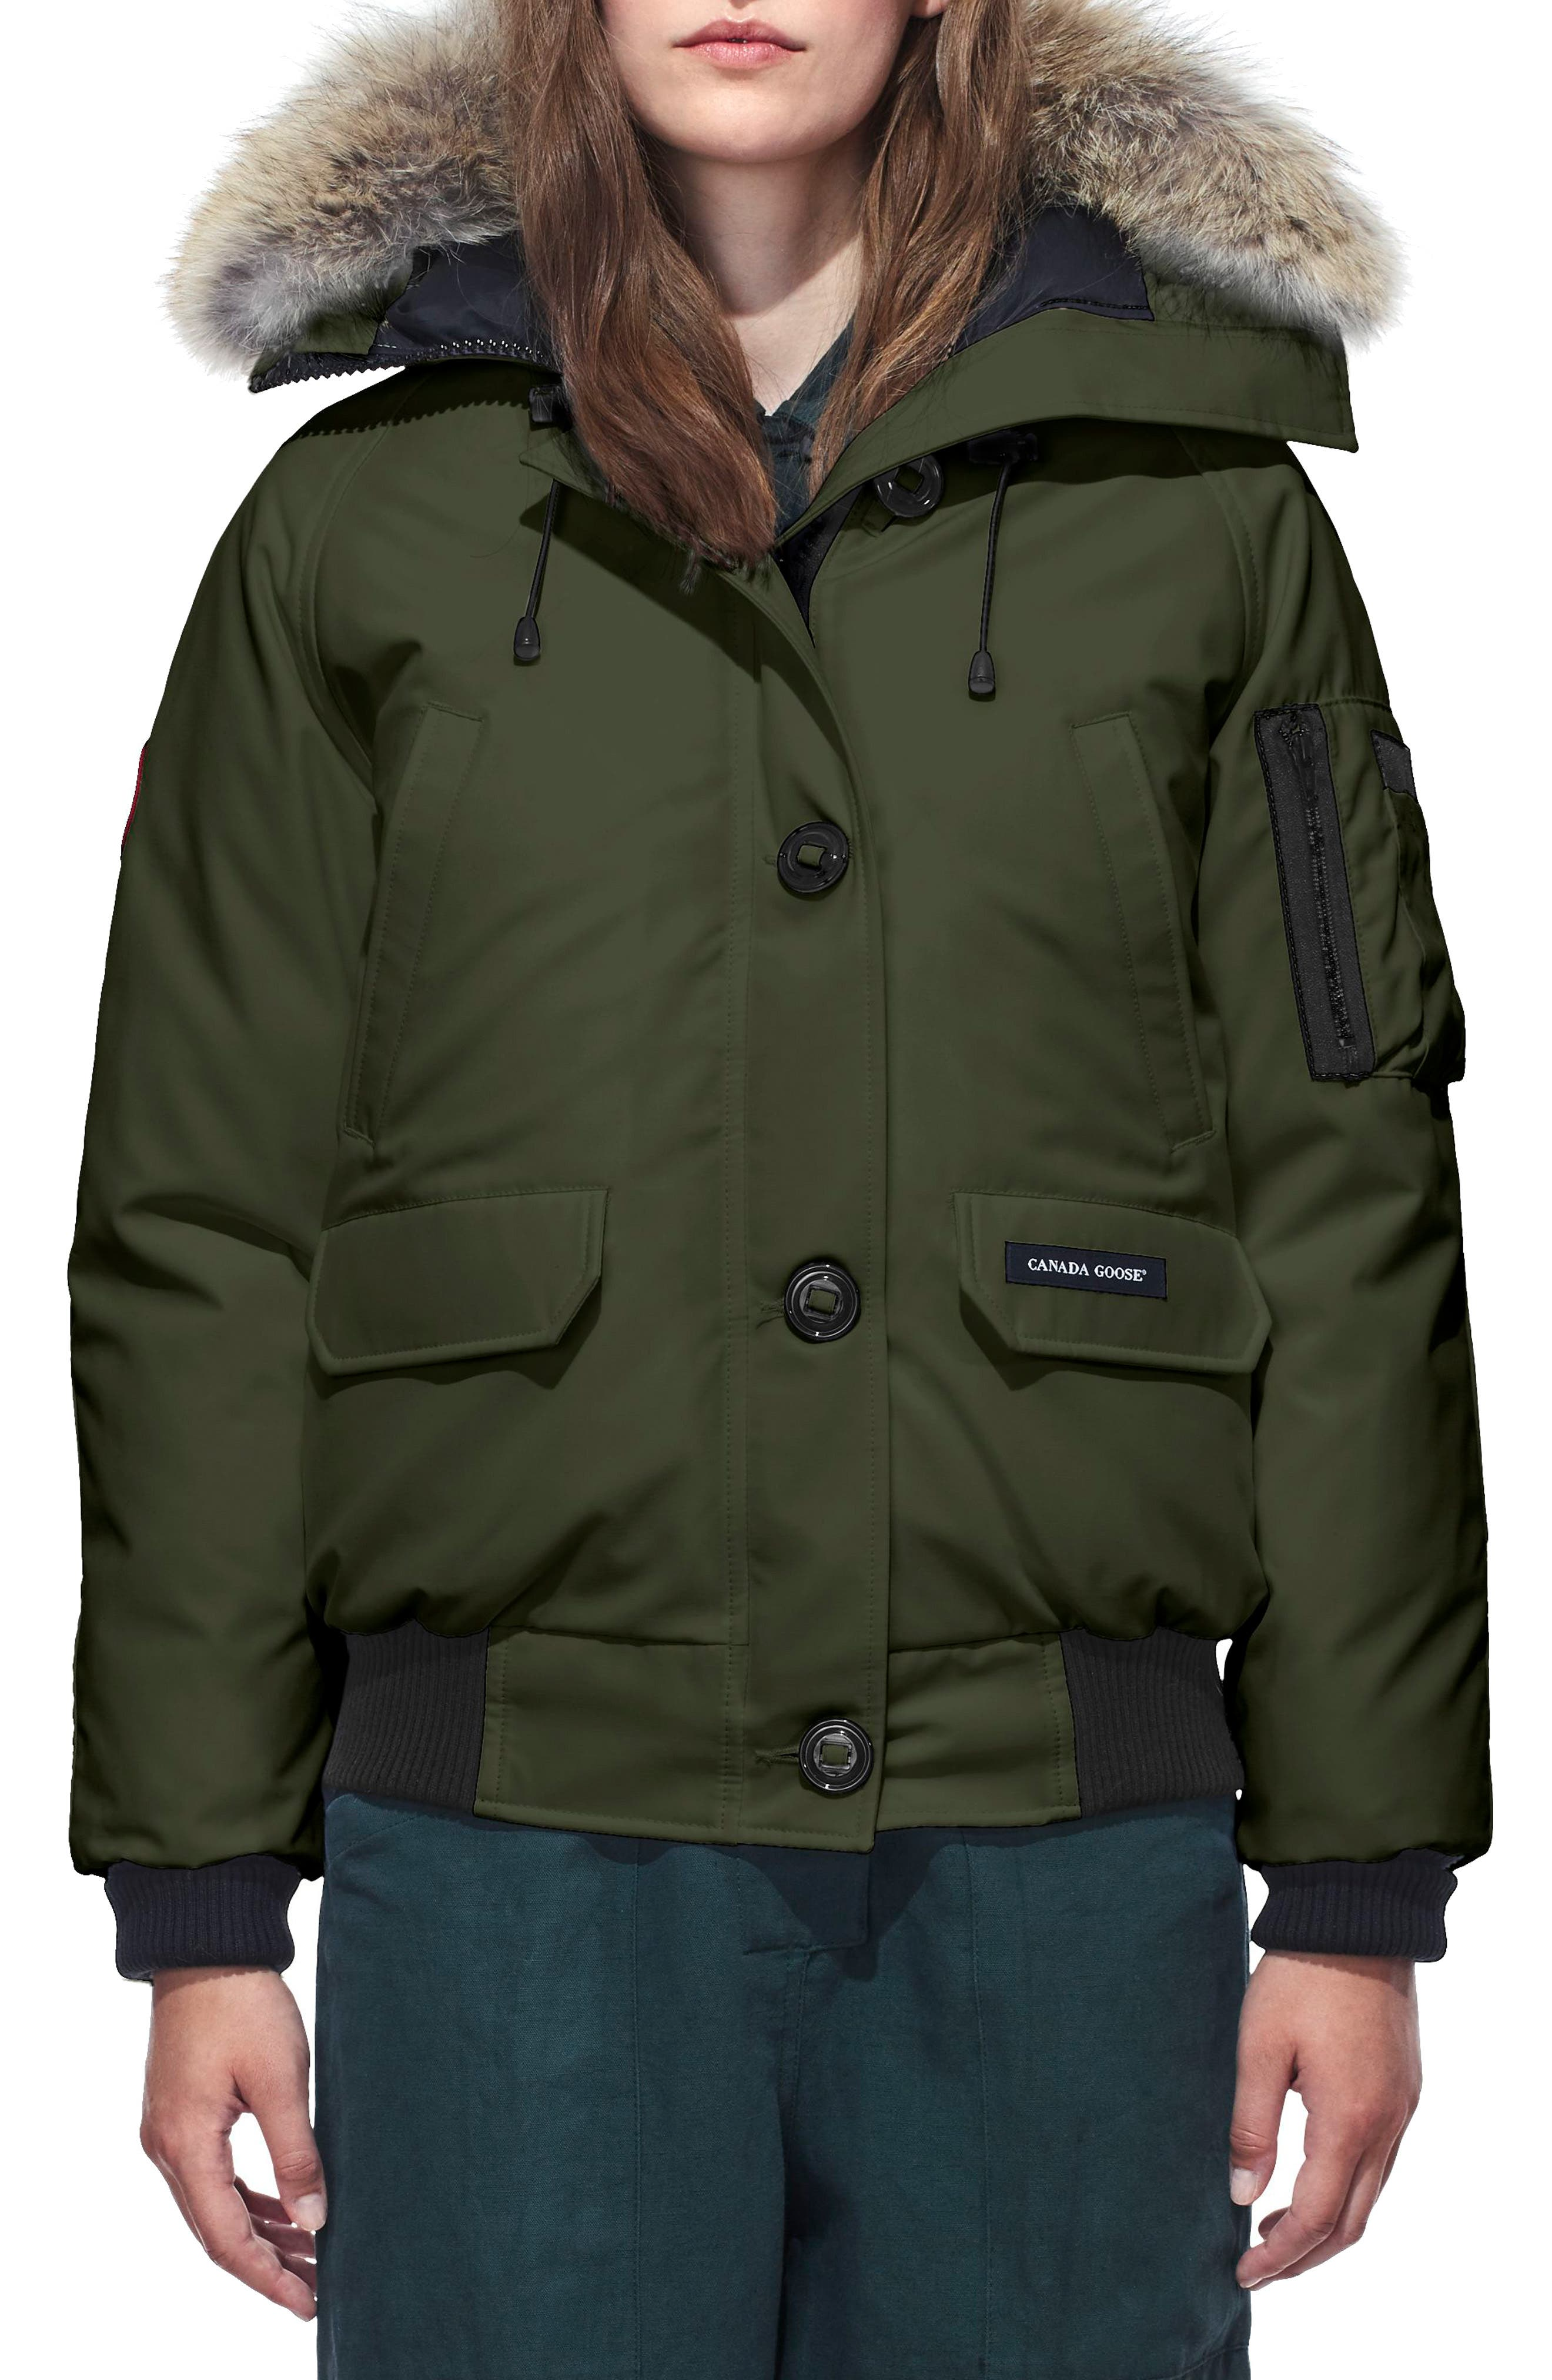 Chilliwack Hooded Down Bomber Jacket with Genuine Coyote Fur Trim,                         Main,                         color, MILITARY GREEN